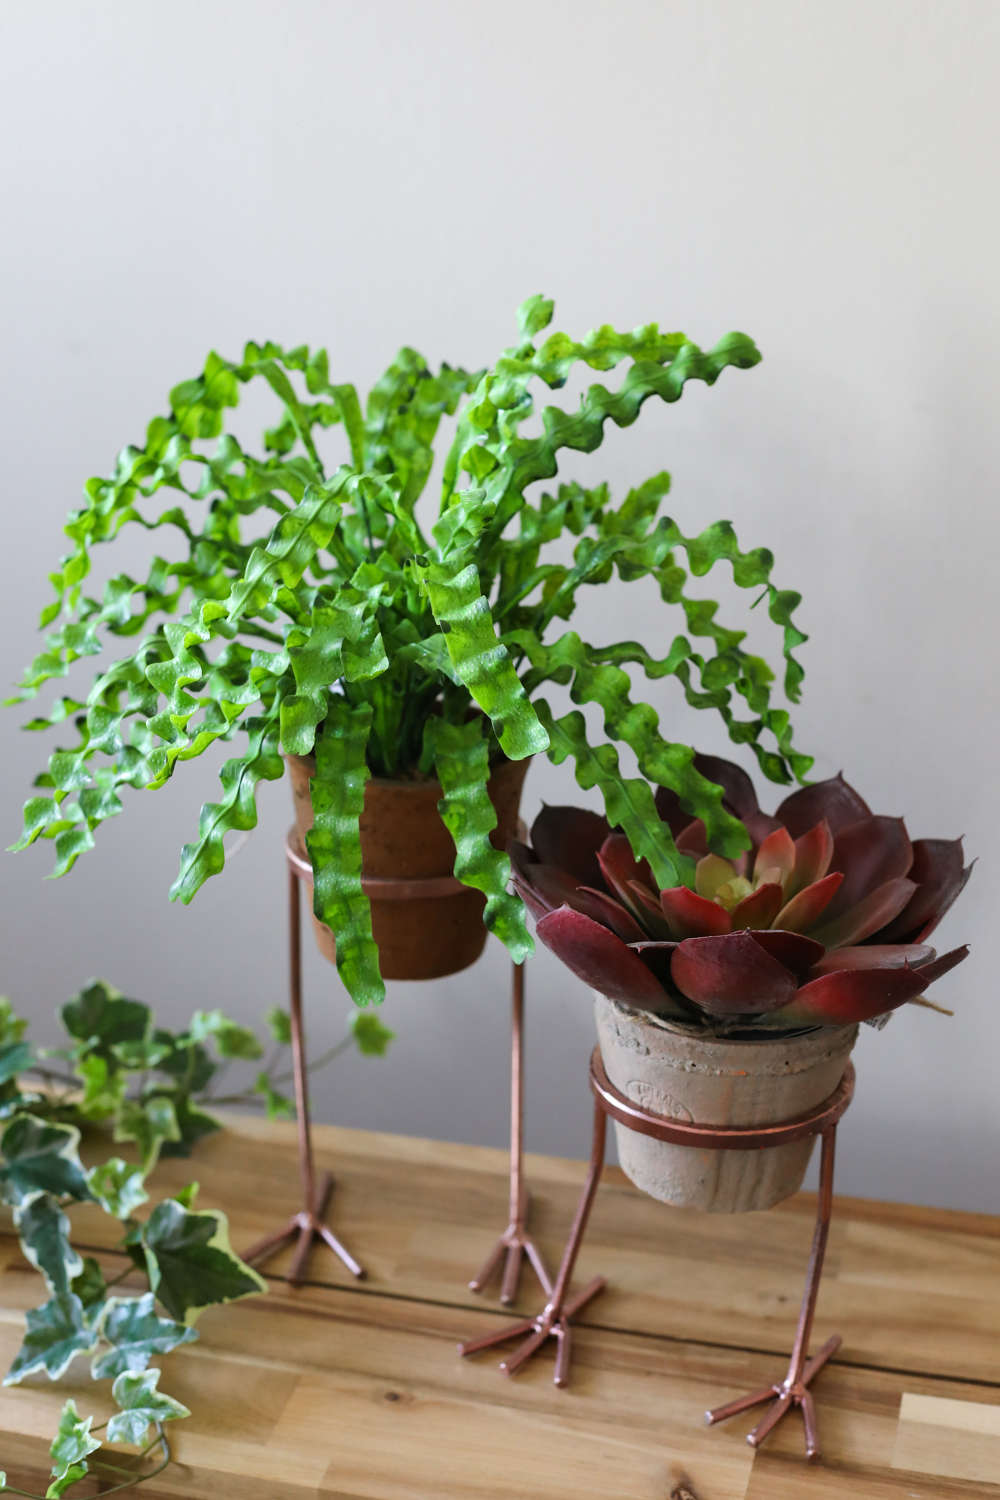 Copper Footed Plant/Herb Holder.